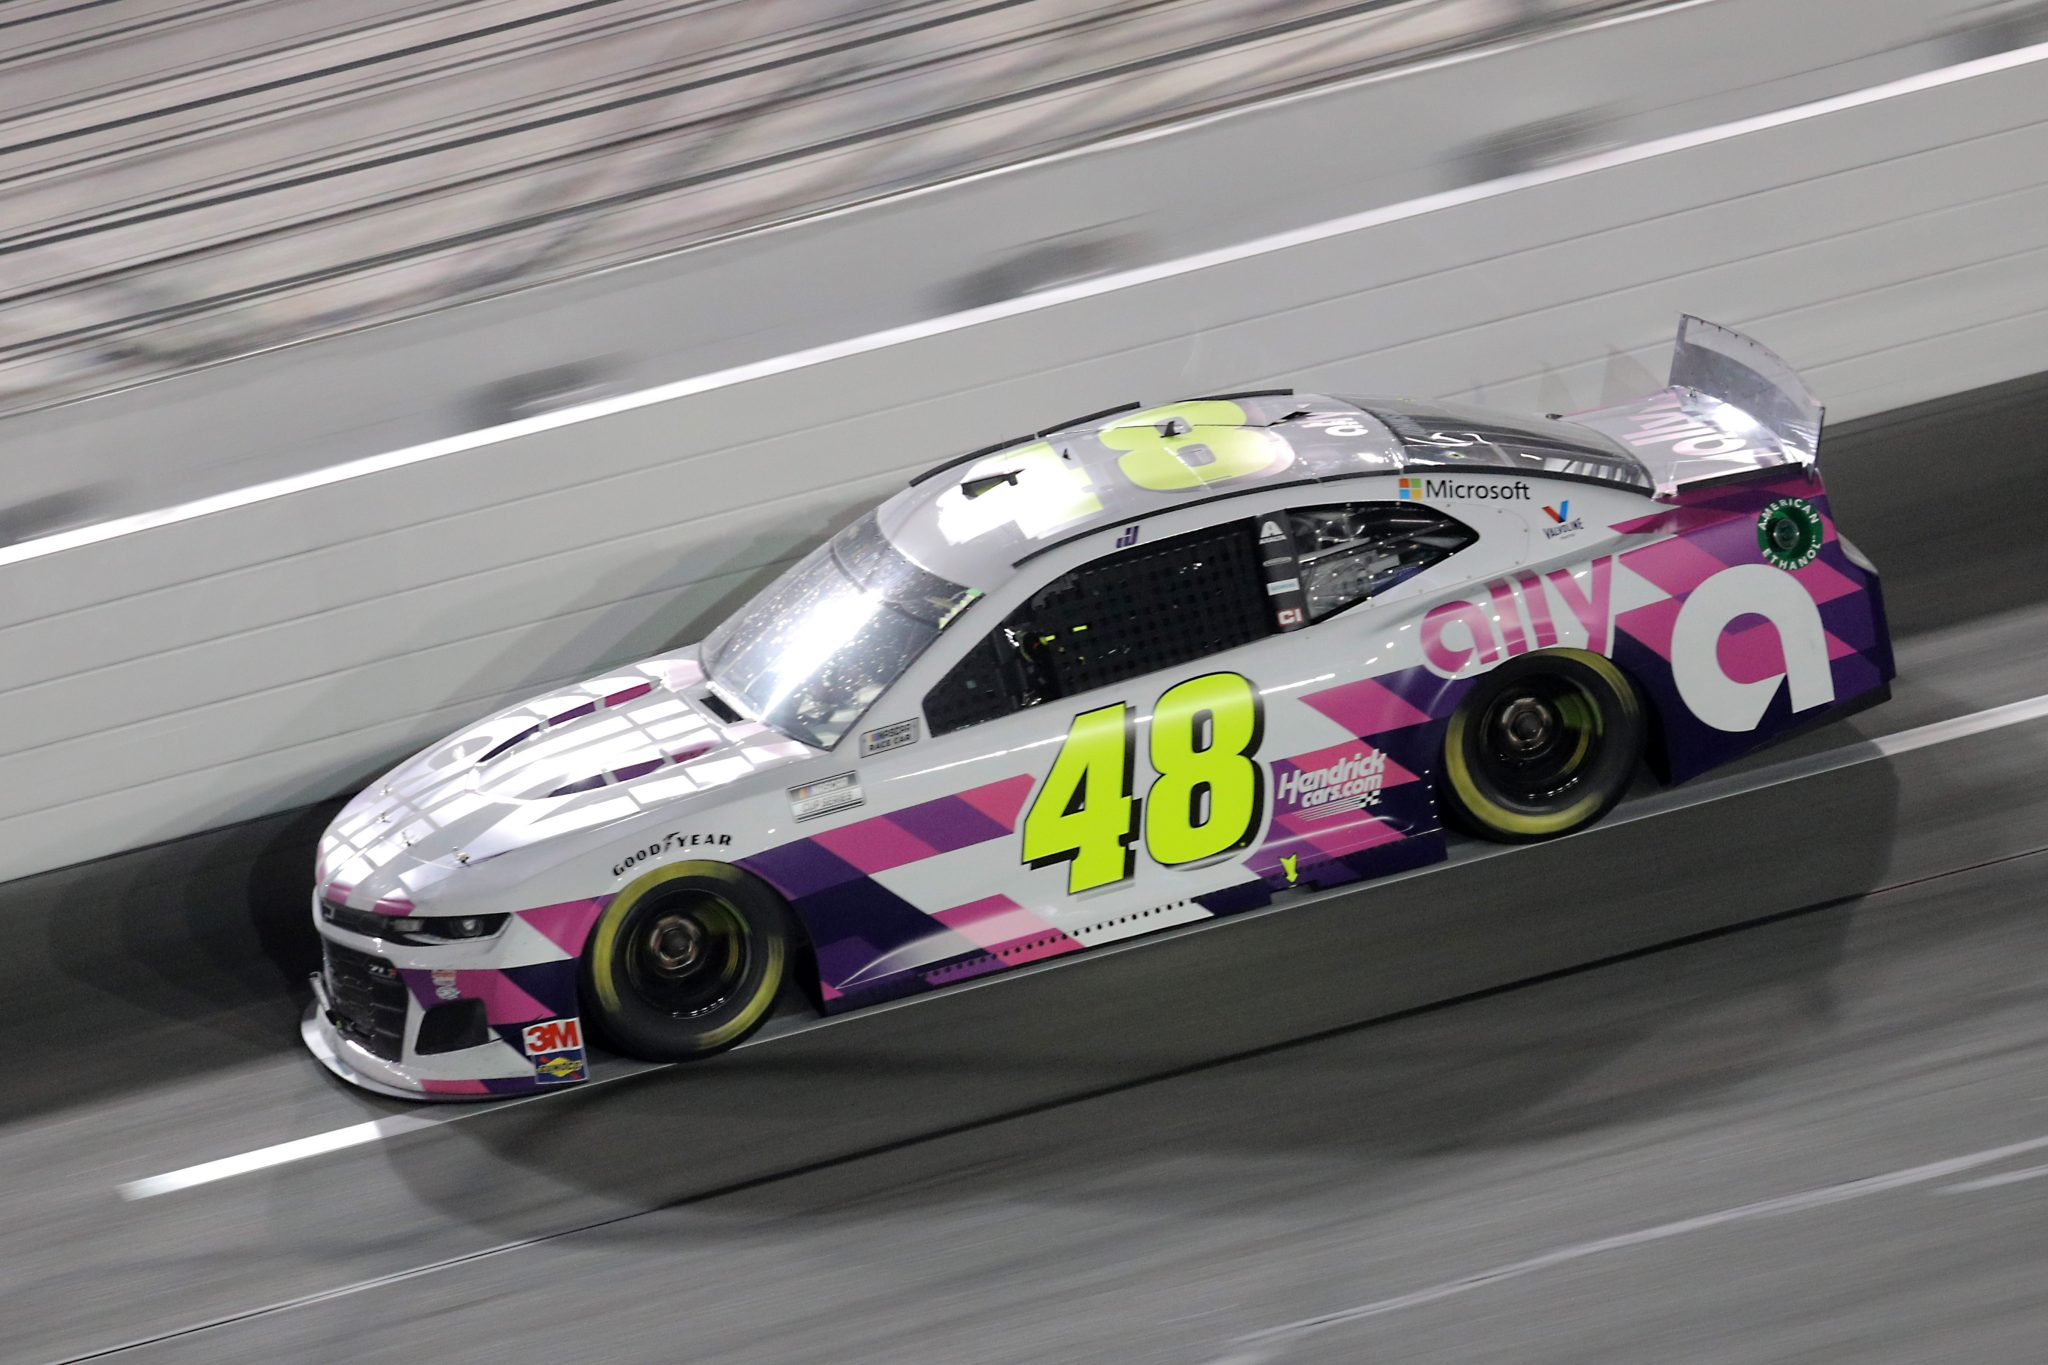 DAYTONA BEACH, FLORIDA - AUGUST 29: Jimmie Johnson, driver of the #48 Ally Chevrolet, races during the NASCAR Cup Series Coke Zero Sugar 400 at Daytona International Speedway on August 29, 2020 in Daytona Beach, Florida. (Photo by Chris Graythen/Getty Images) | Getty Images